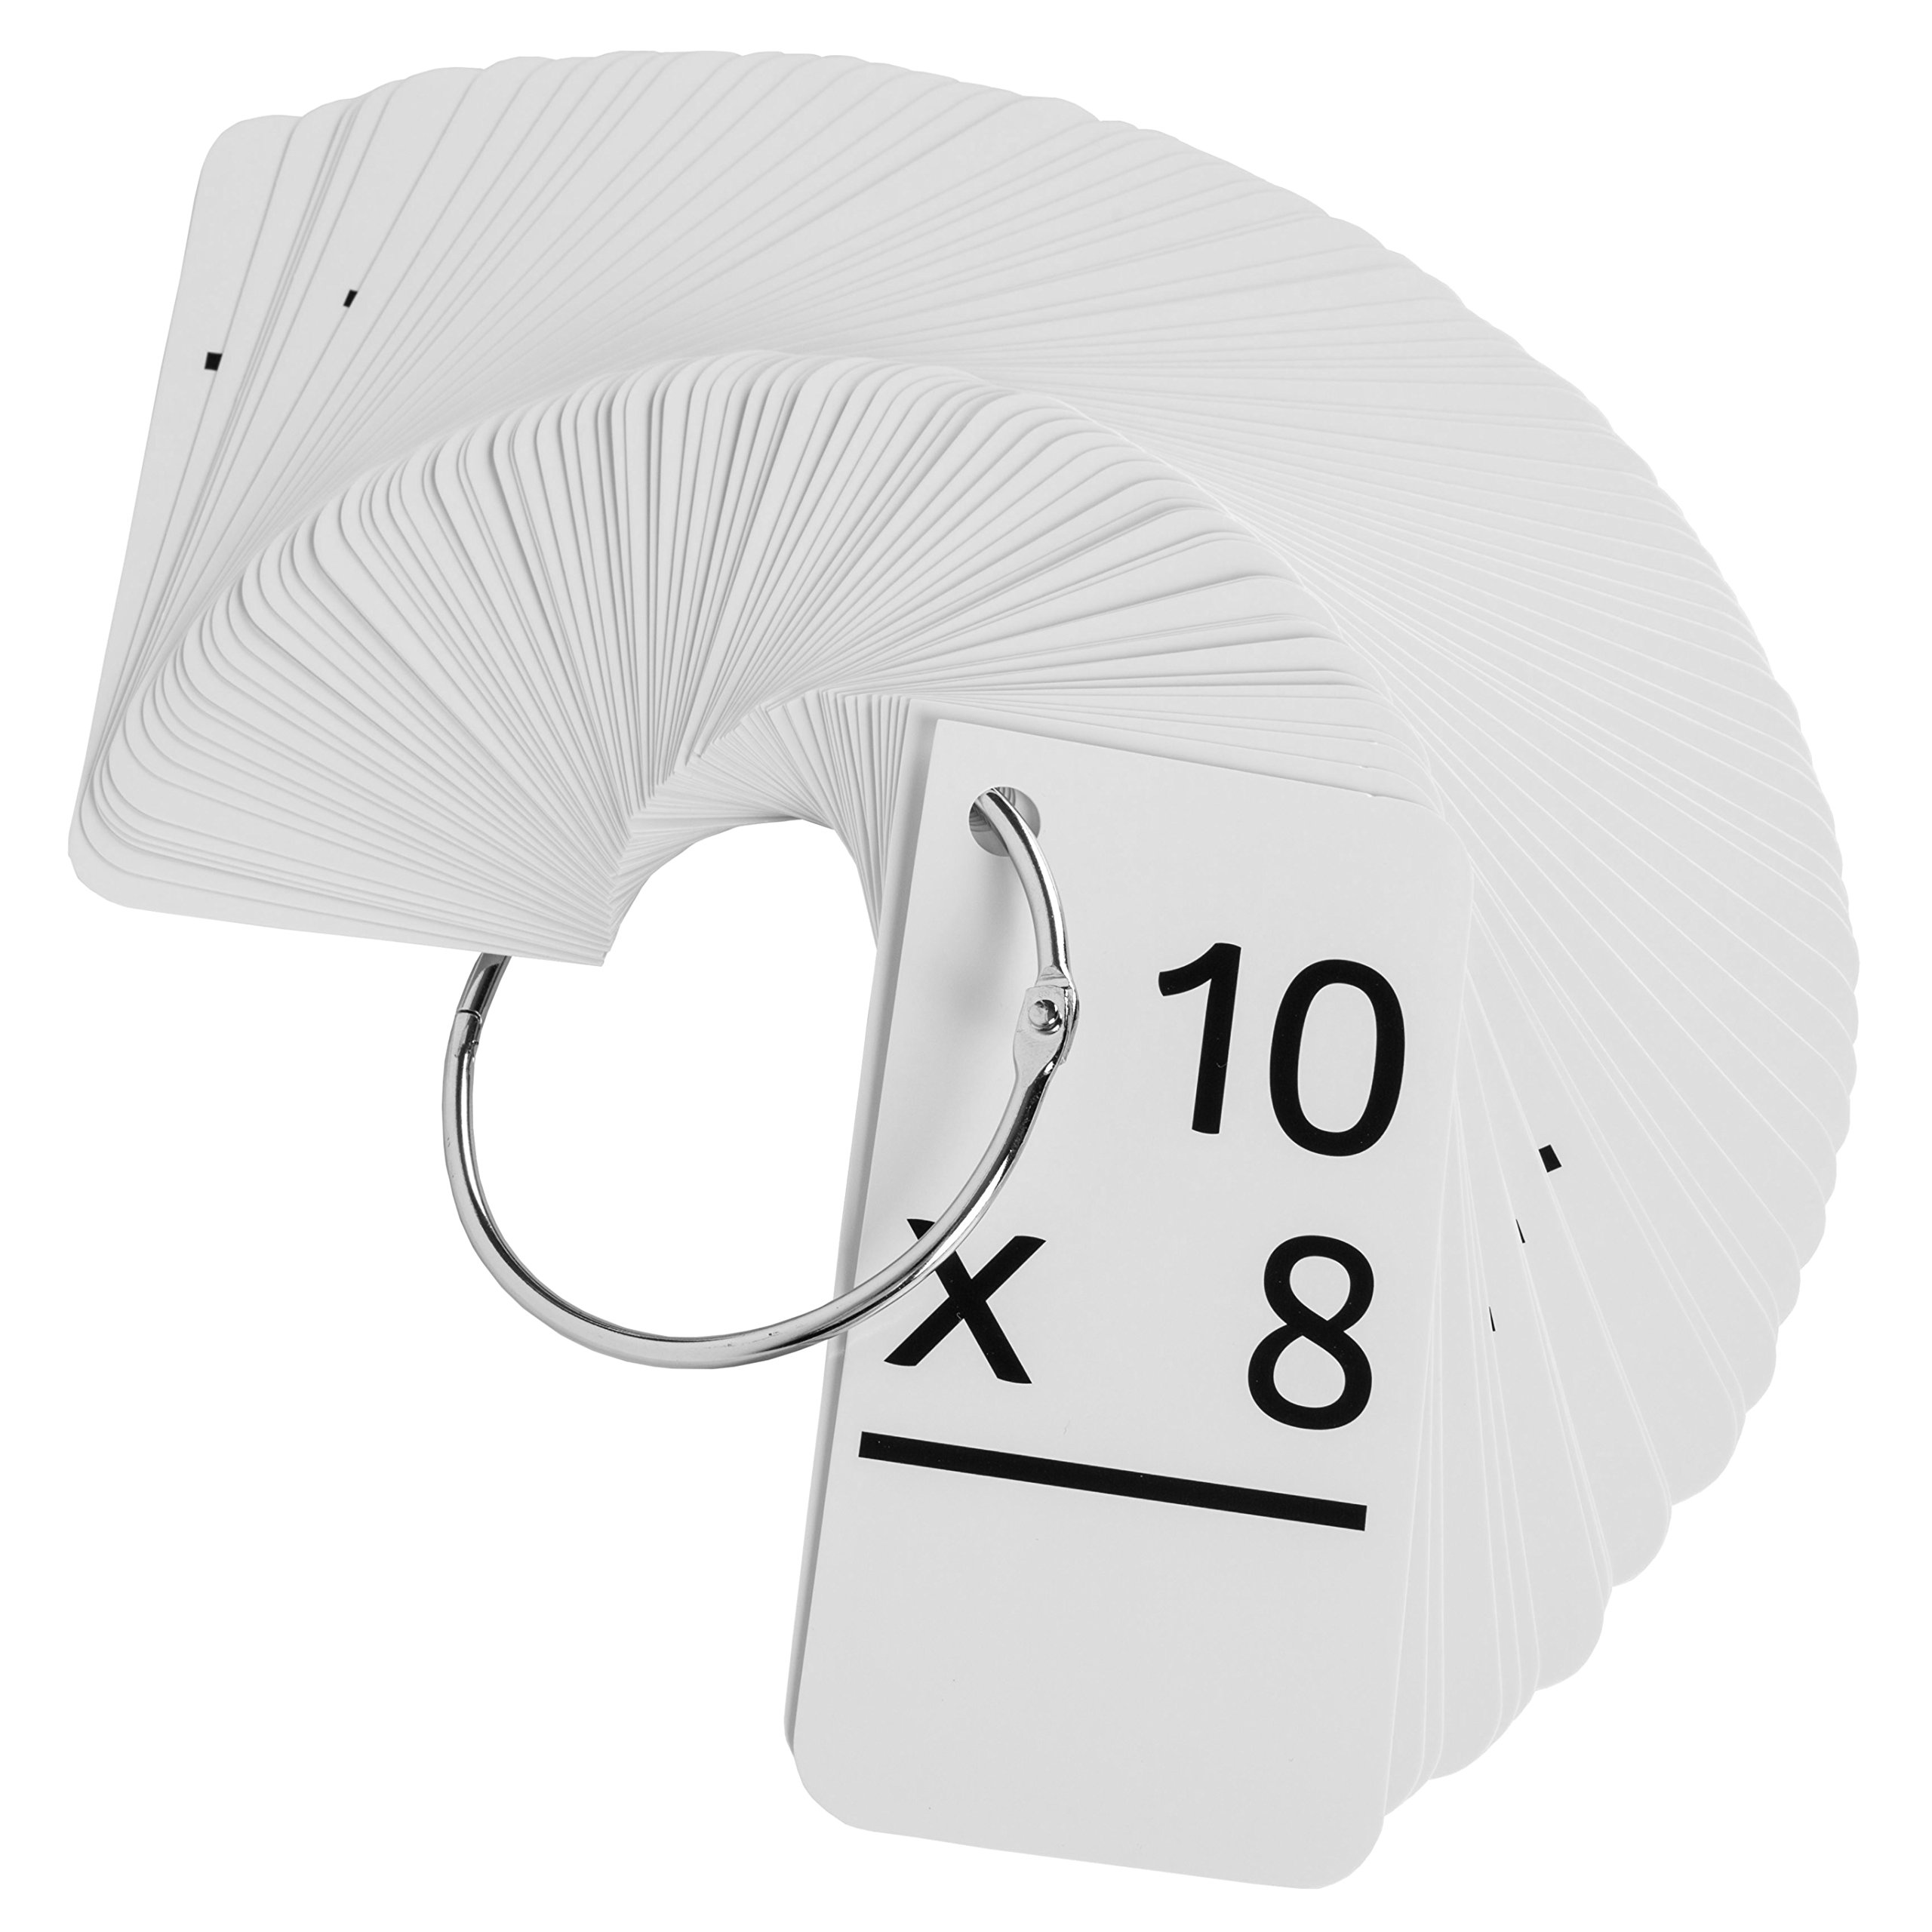 Star Education Multiplication Flash Cards, 0-12 (All Facts-169 Cards) With 2 Rings by Star Right (Image #3)